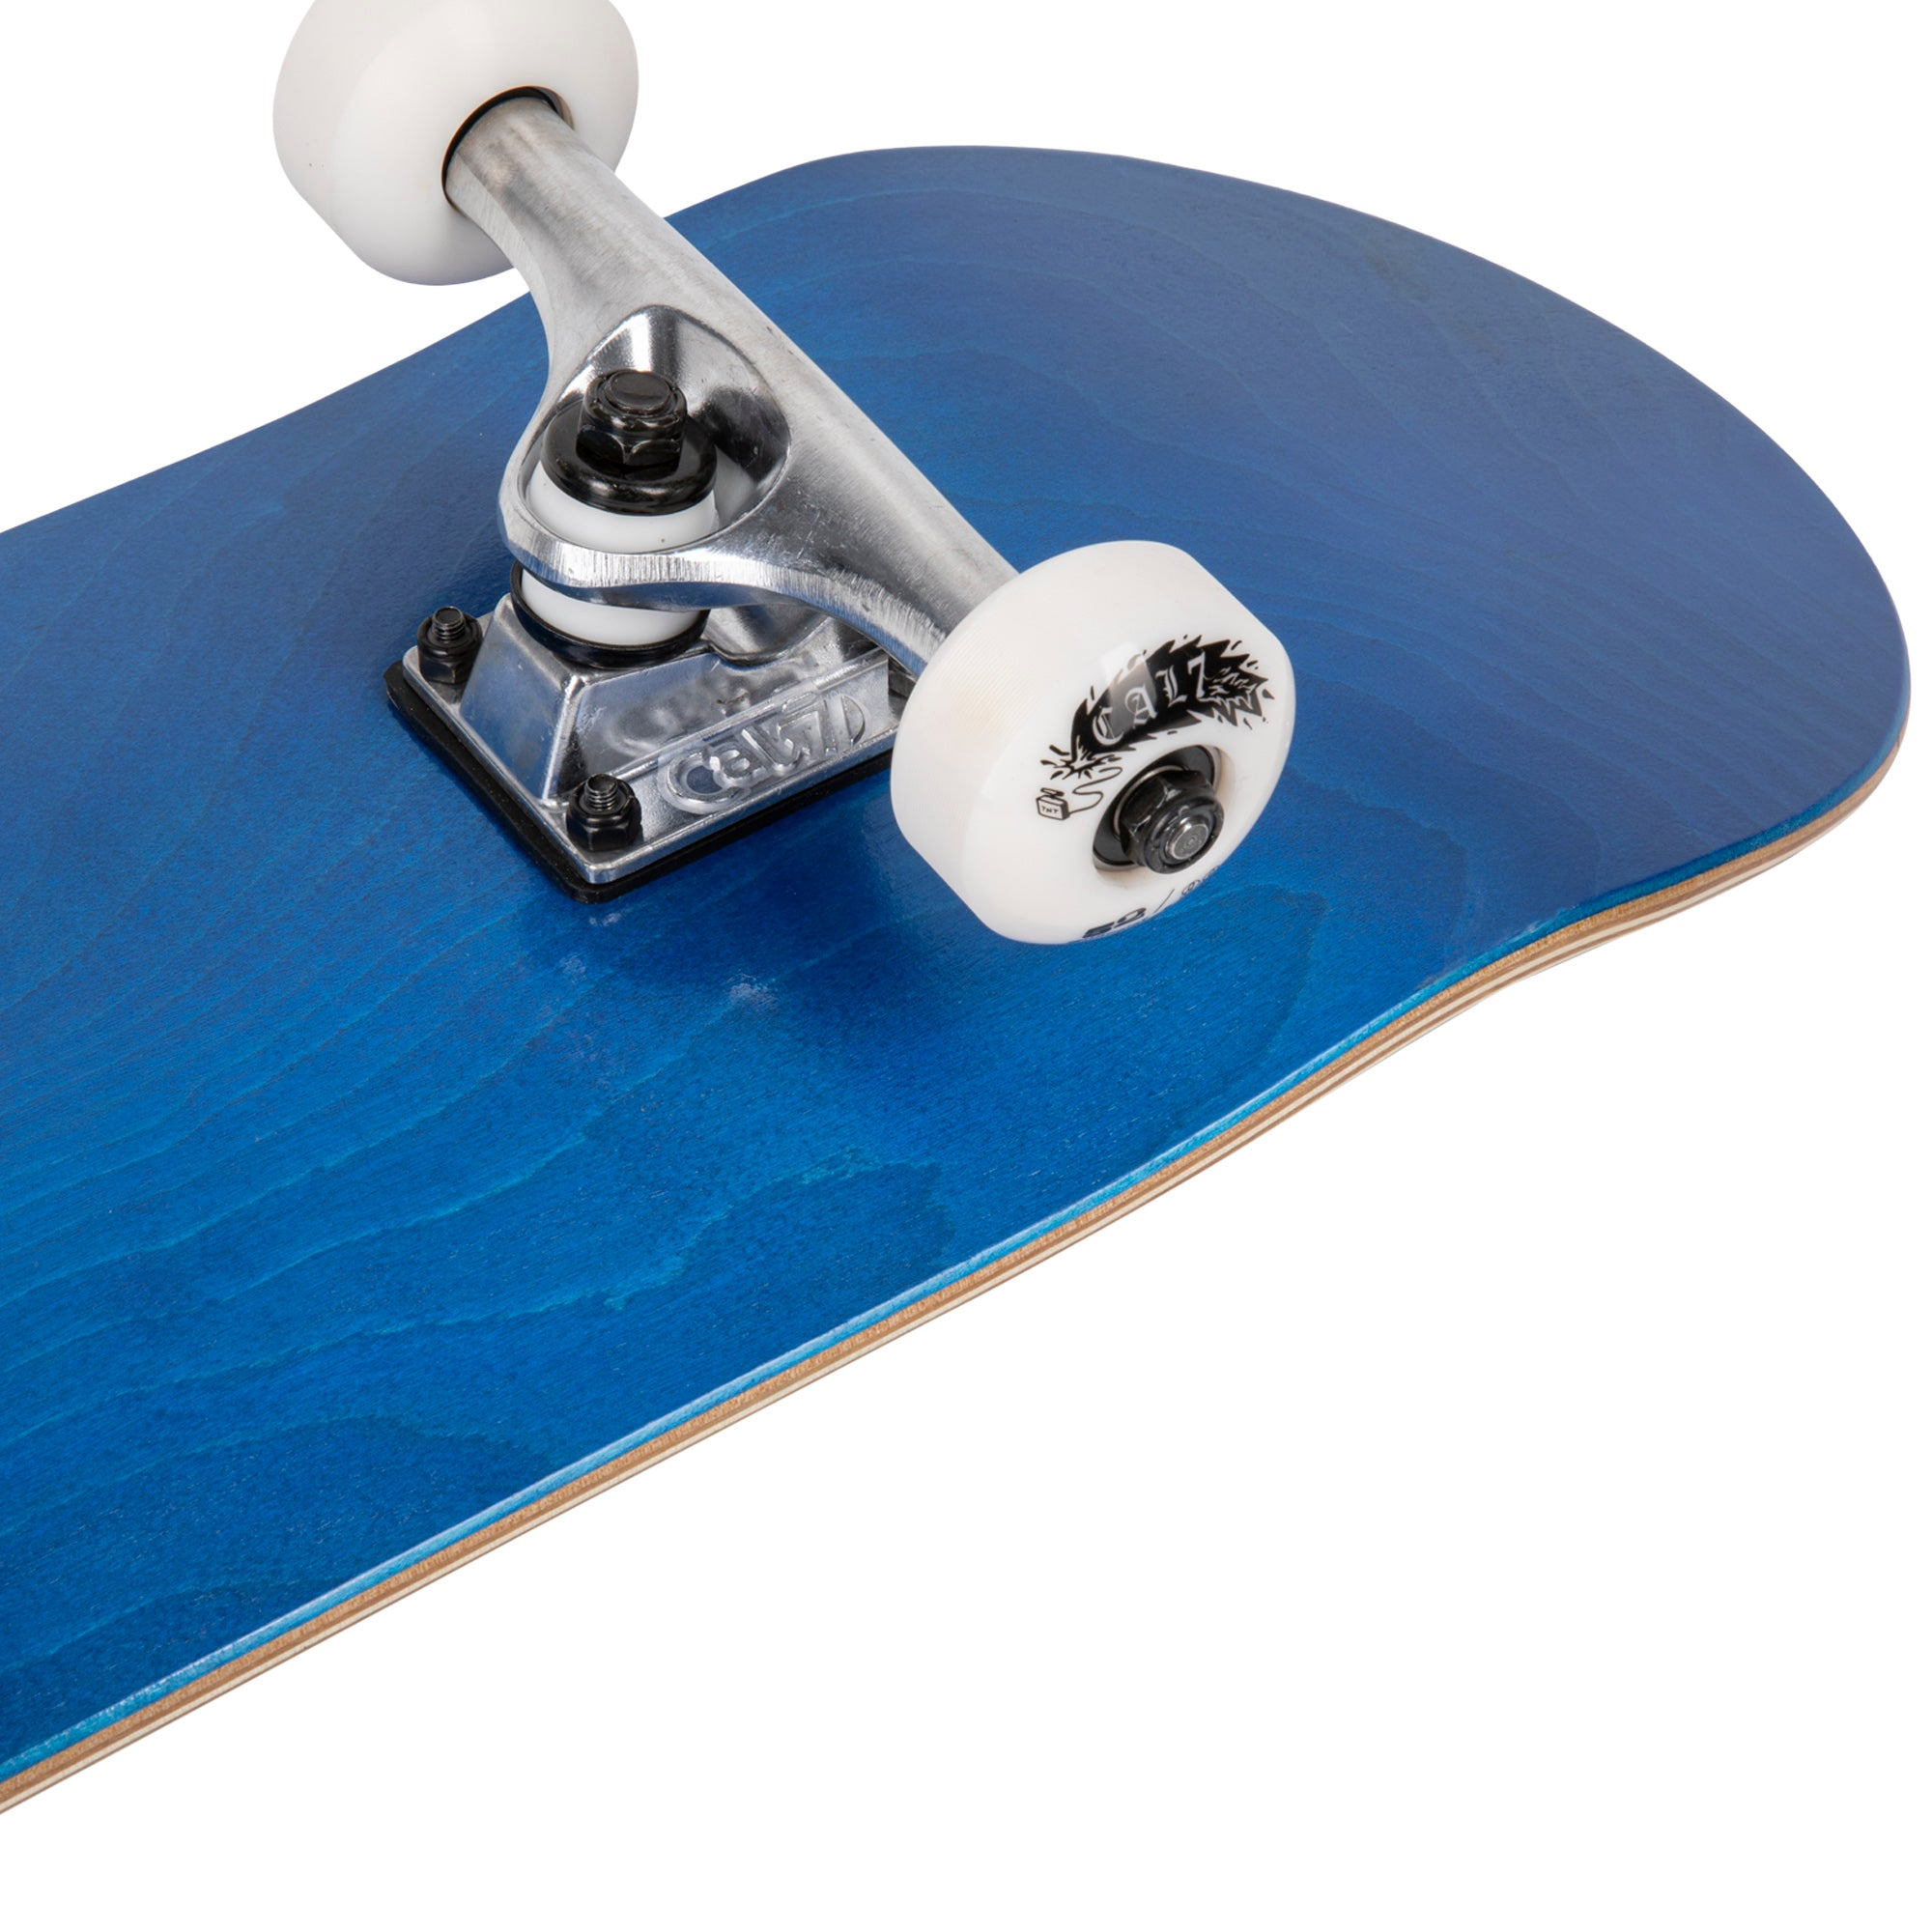 Cal 7 Complete 7.5/7.75/8-Inch Skateboard Current with Logo and Blue Stain